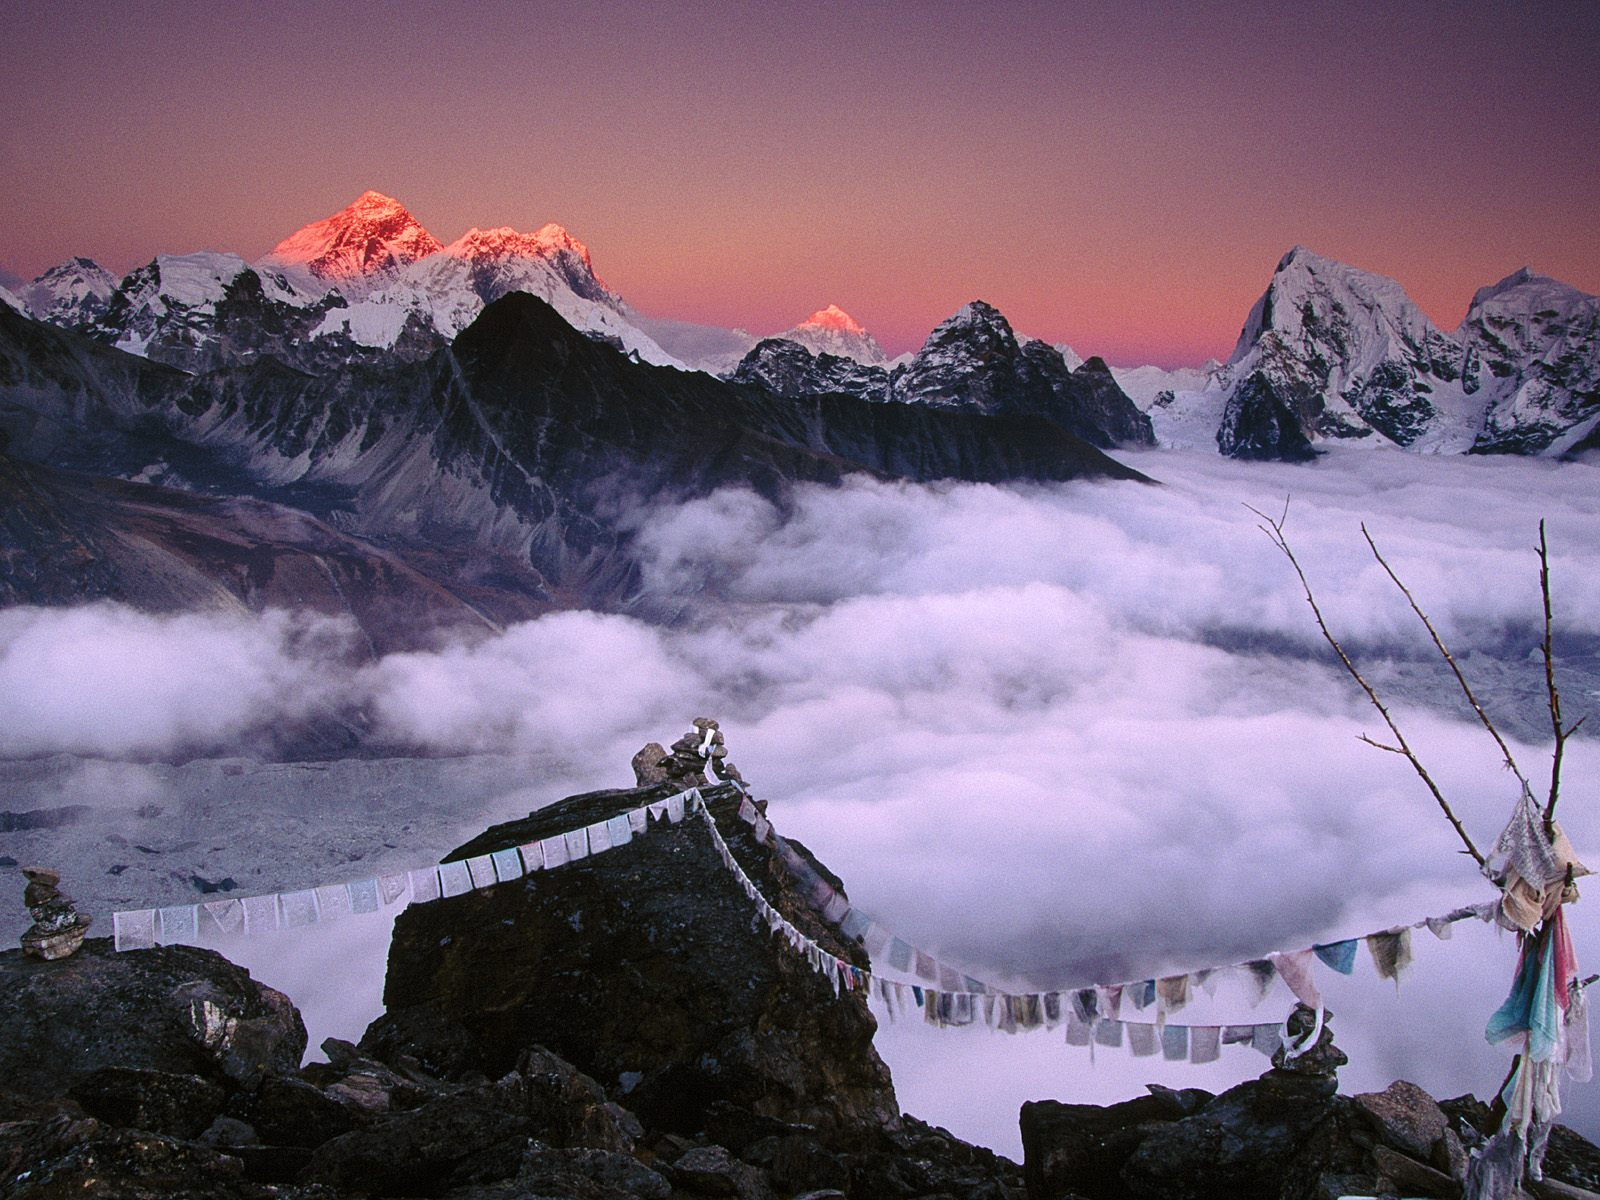 World Beautifull Places Mount Everest Nepal China Nice View And Images Gallery